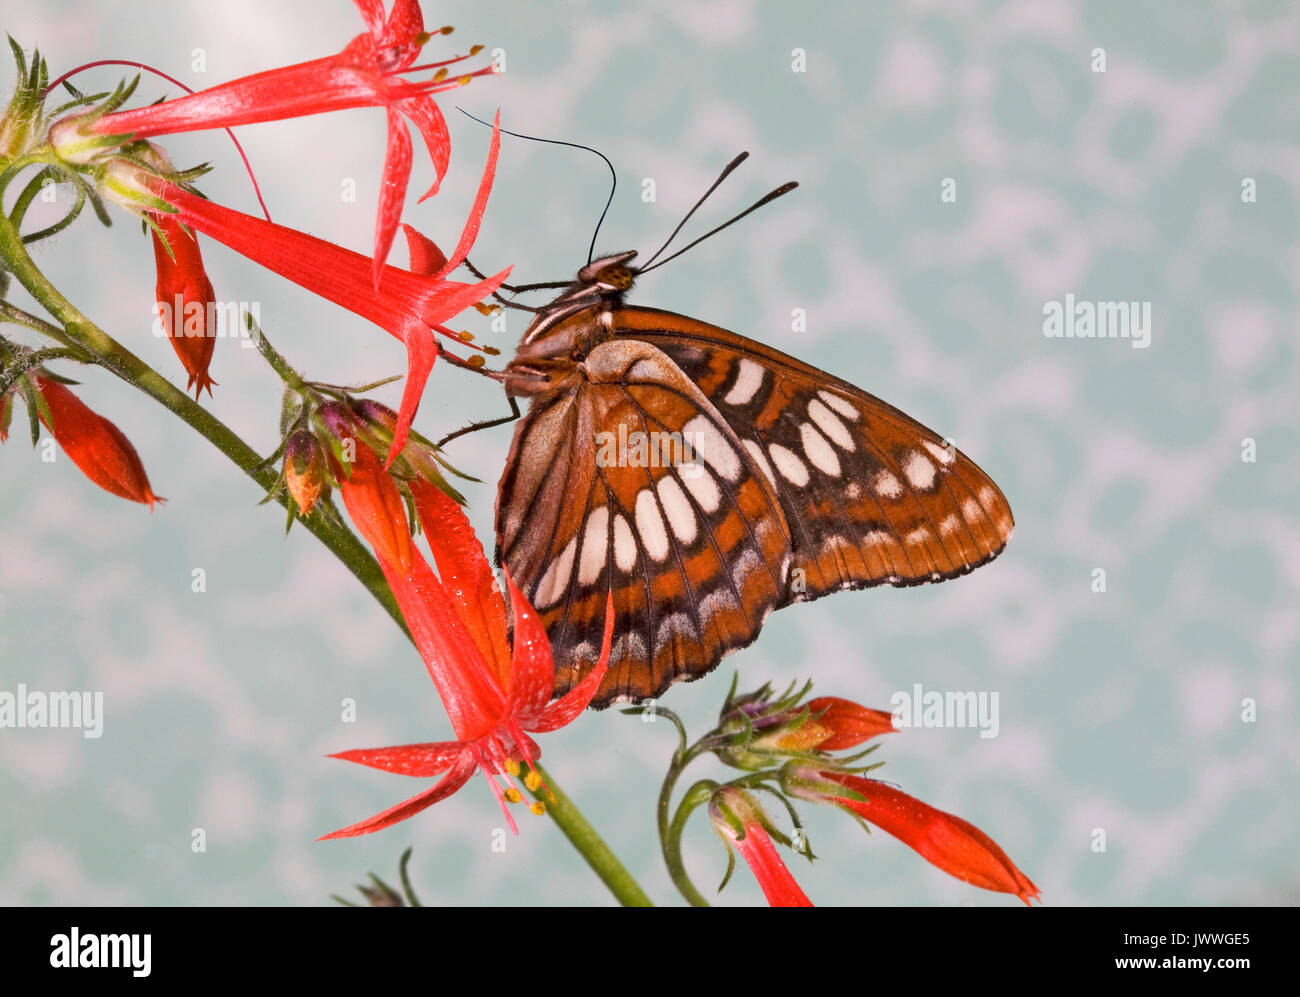 A Lorquin's Admiral butterfly, Limenitis lorquini,  alighted on a Columbian lily wildflower. - Stock Image